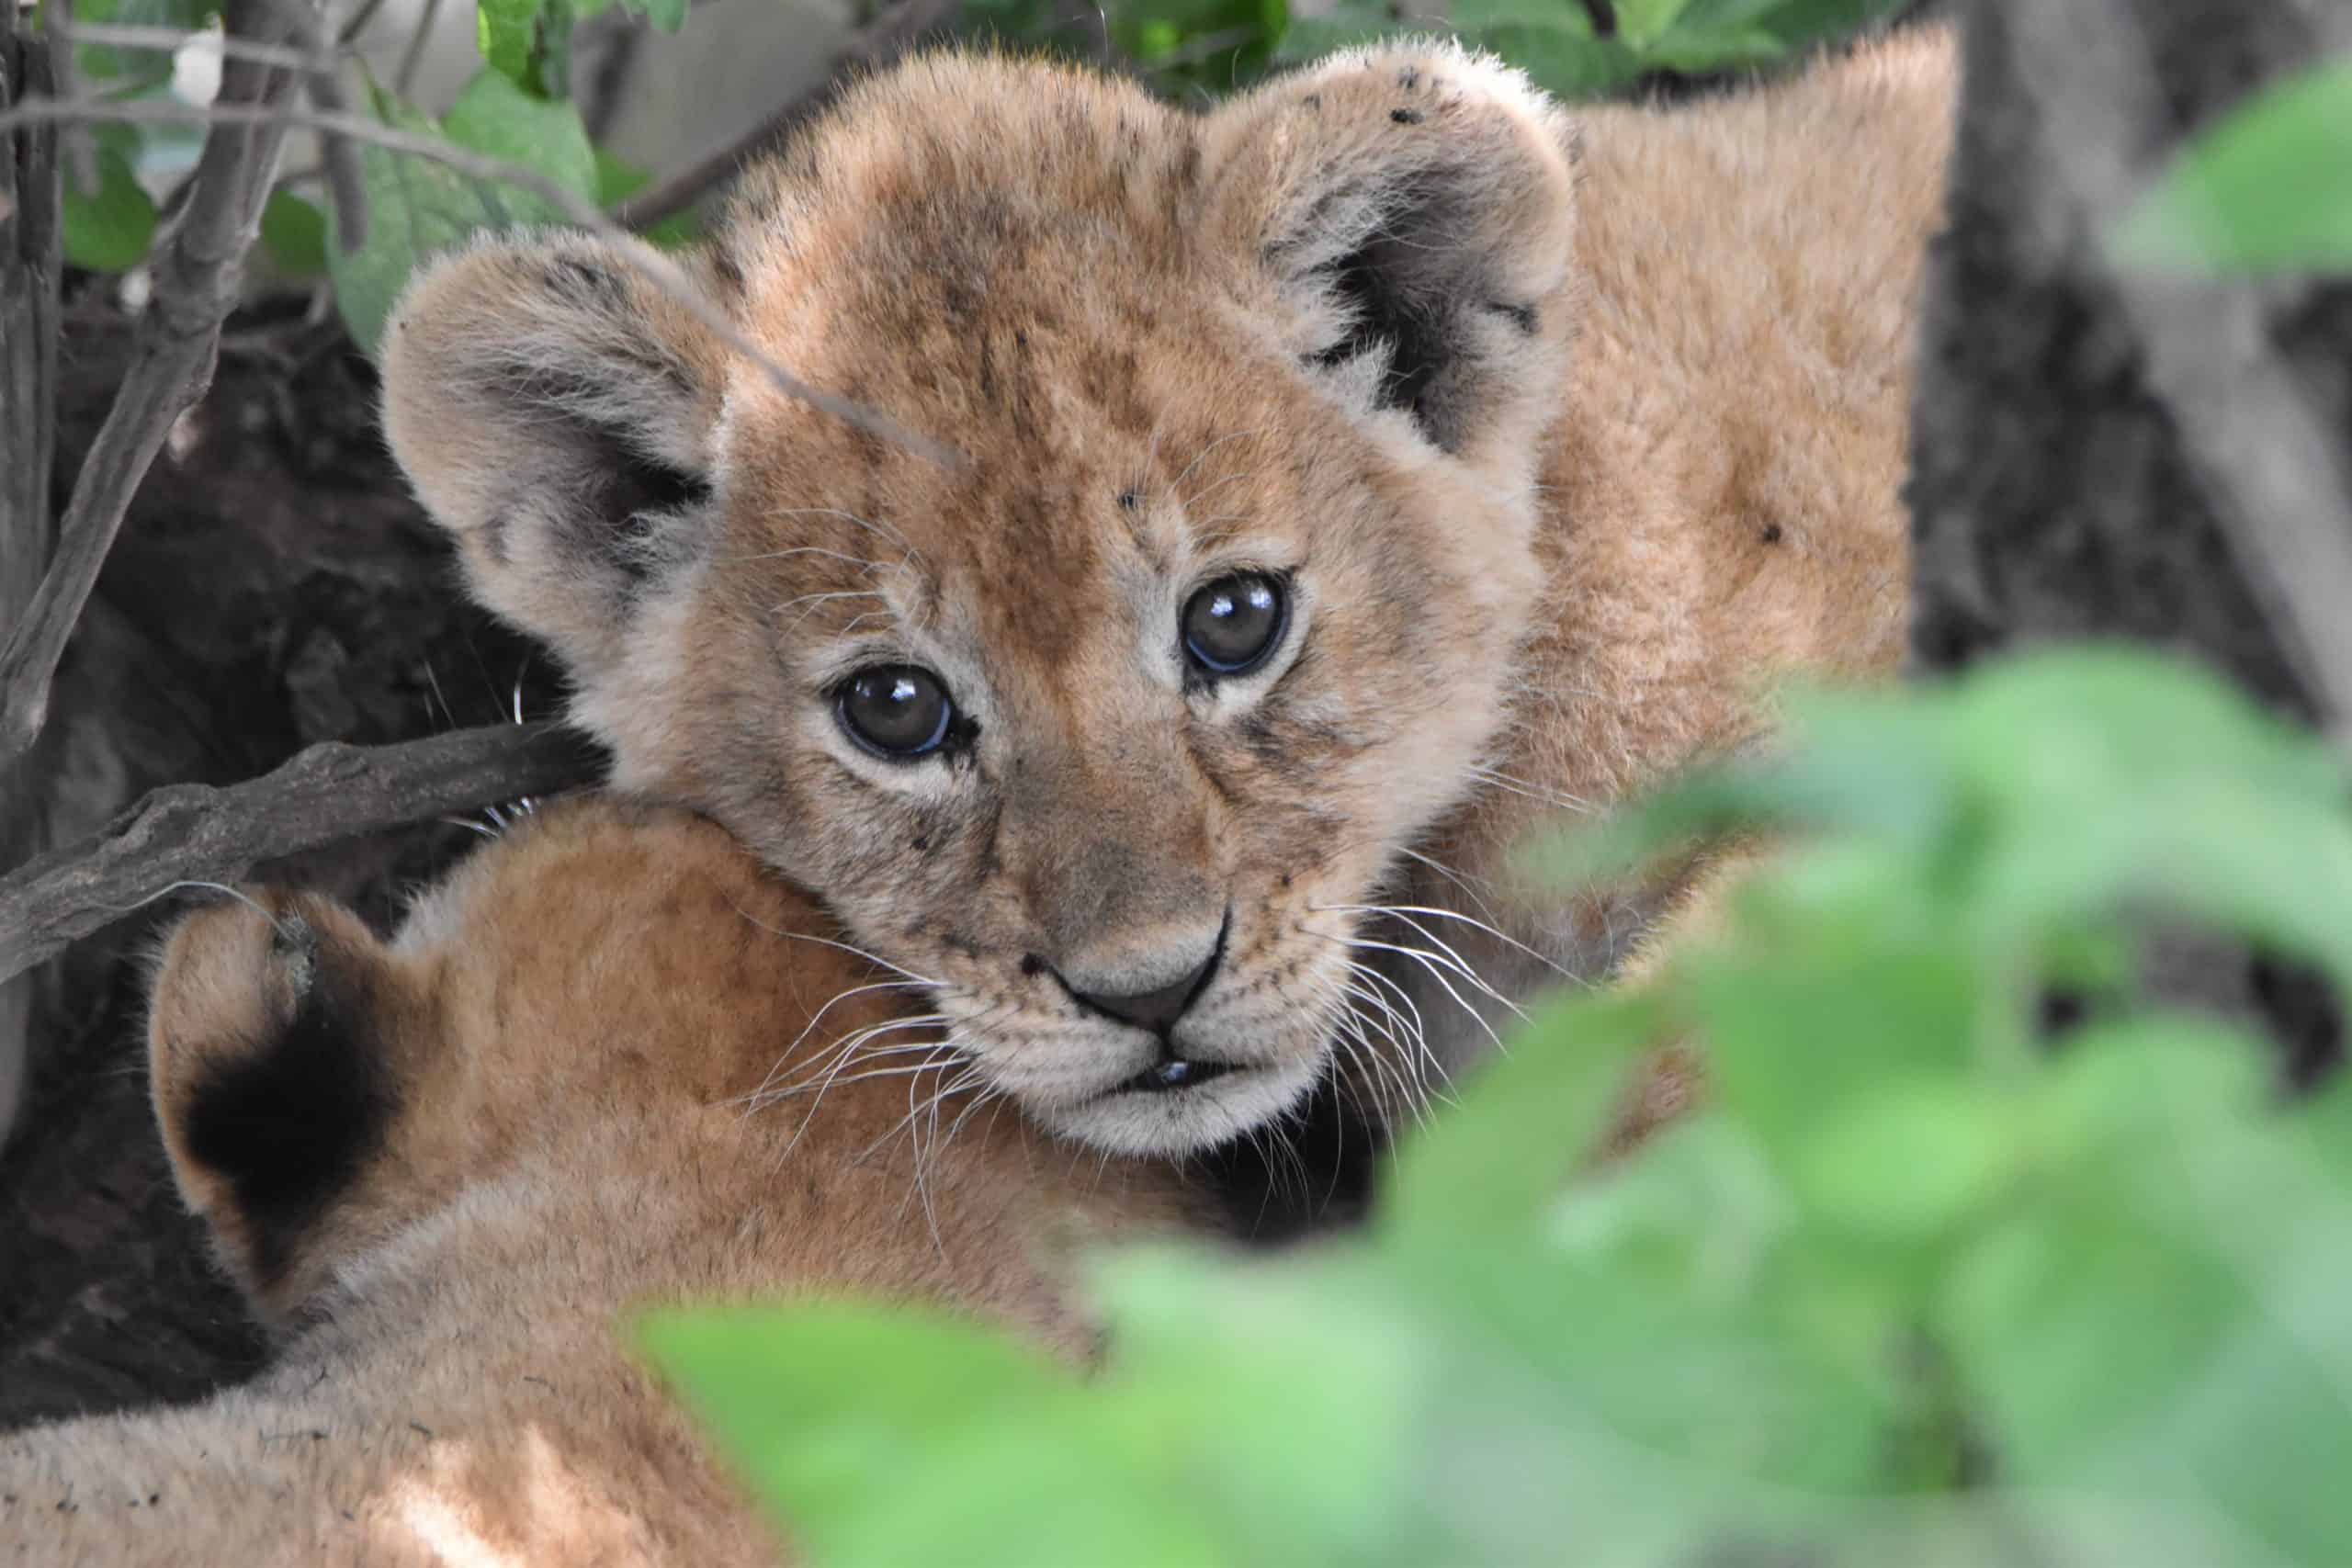 Lion cub stares straight at the camera through the undergrowth while lying on a second cub with its back to the camera.